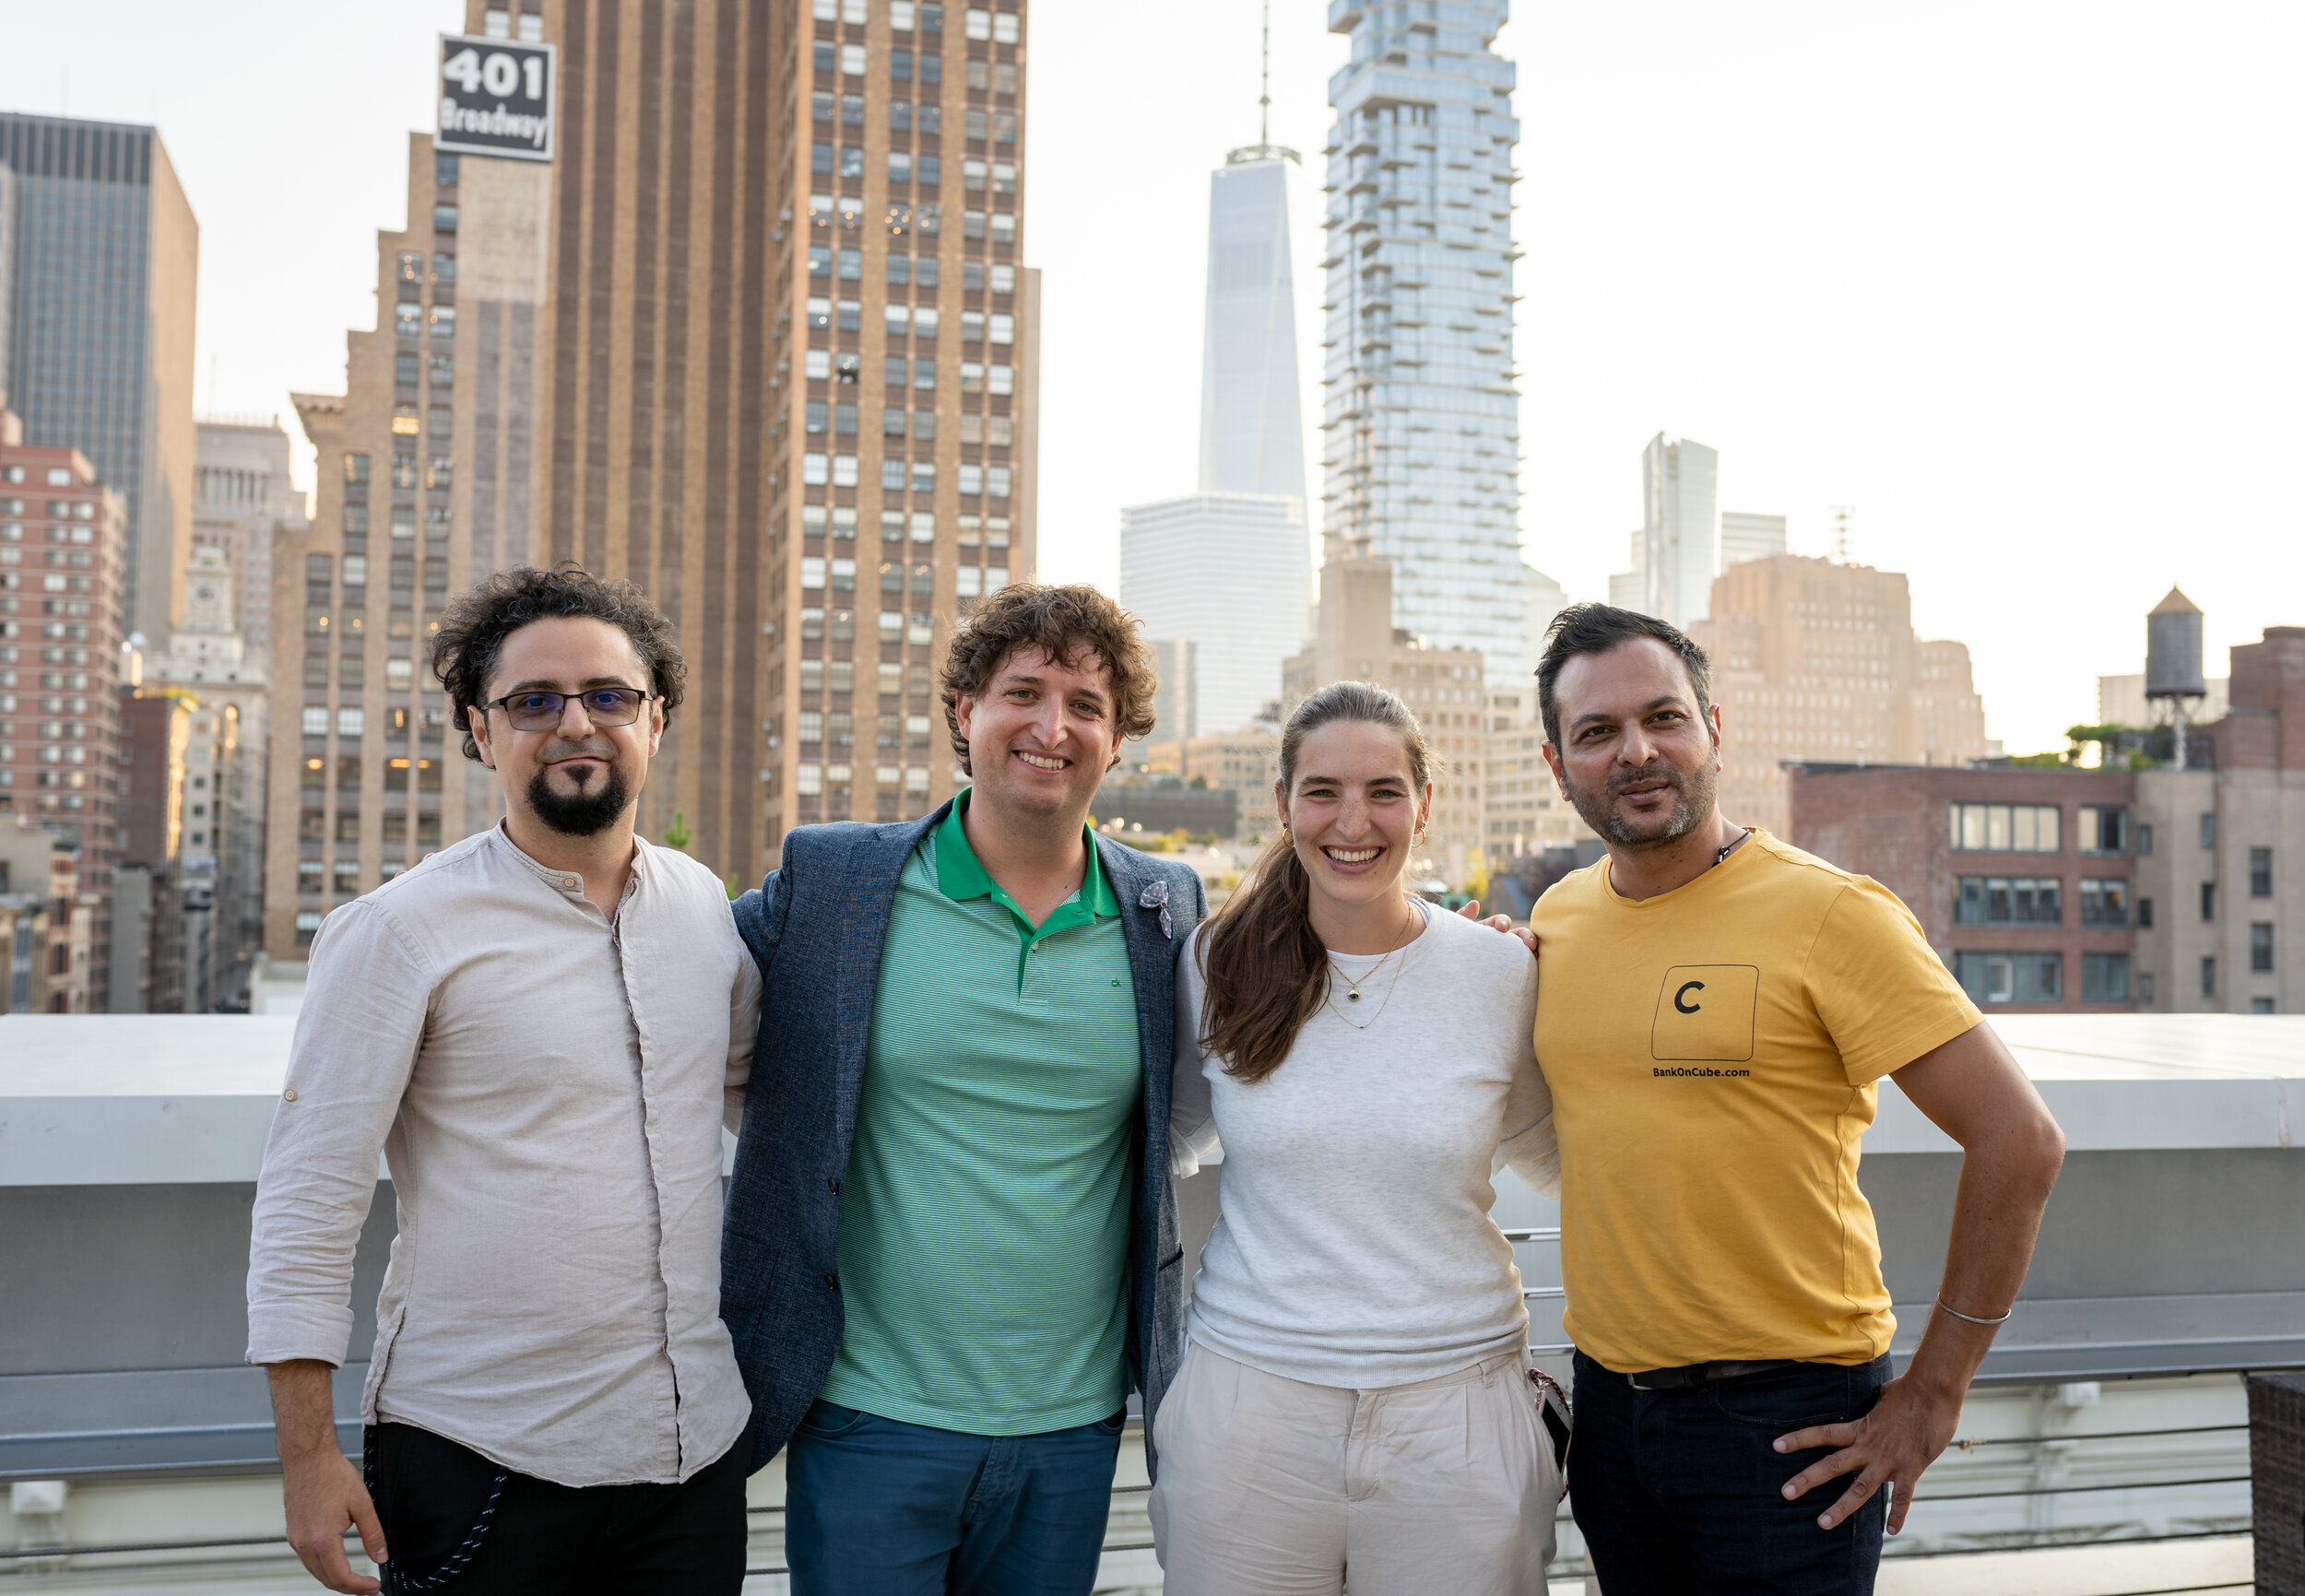 Fall 2019 Co-Founders - From left: Dragos Badea, Co-Founder of YArooms, Tom Winter, Co-Founder of Devskiller, Nina Hoedlmayr, Co-Founder of Yodel, and Satyen Kothari, Founder of Cube